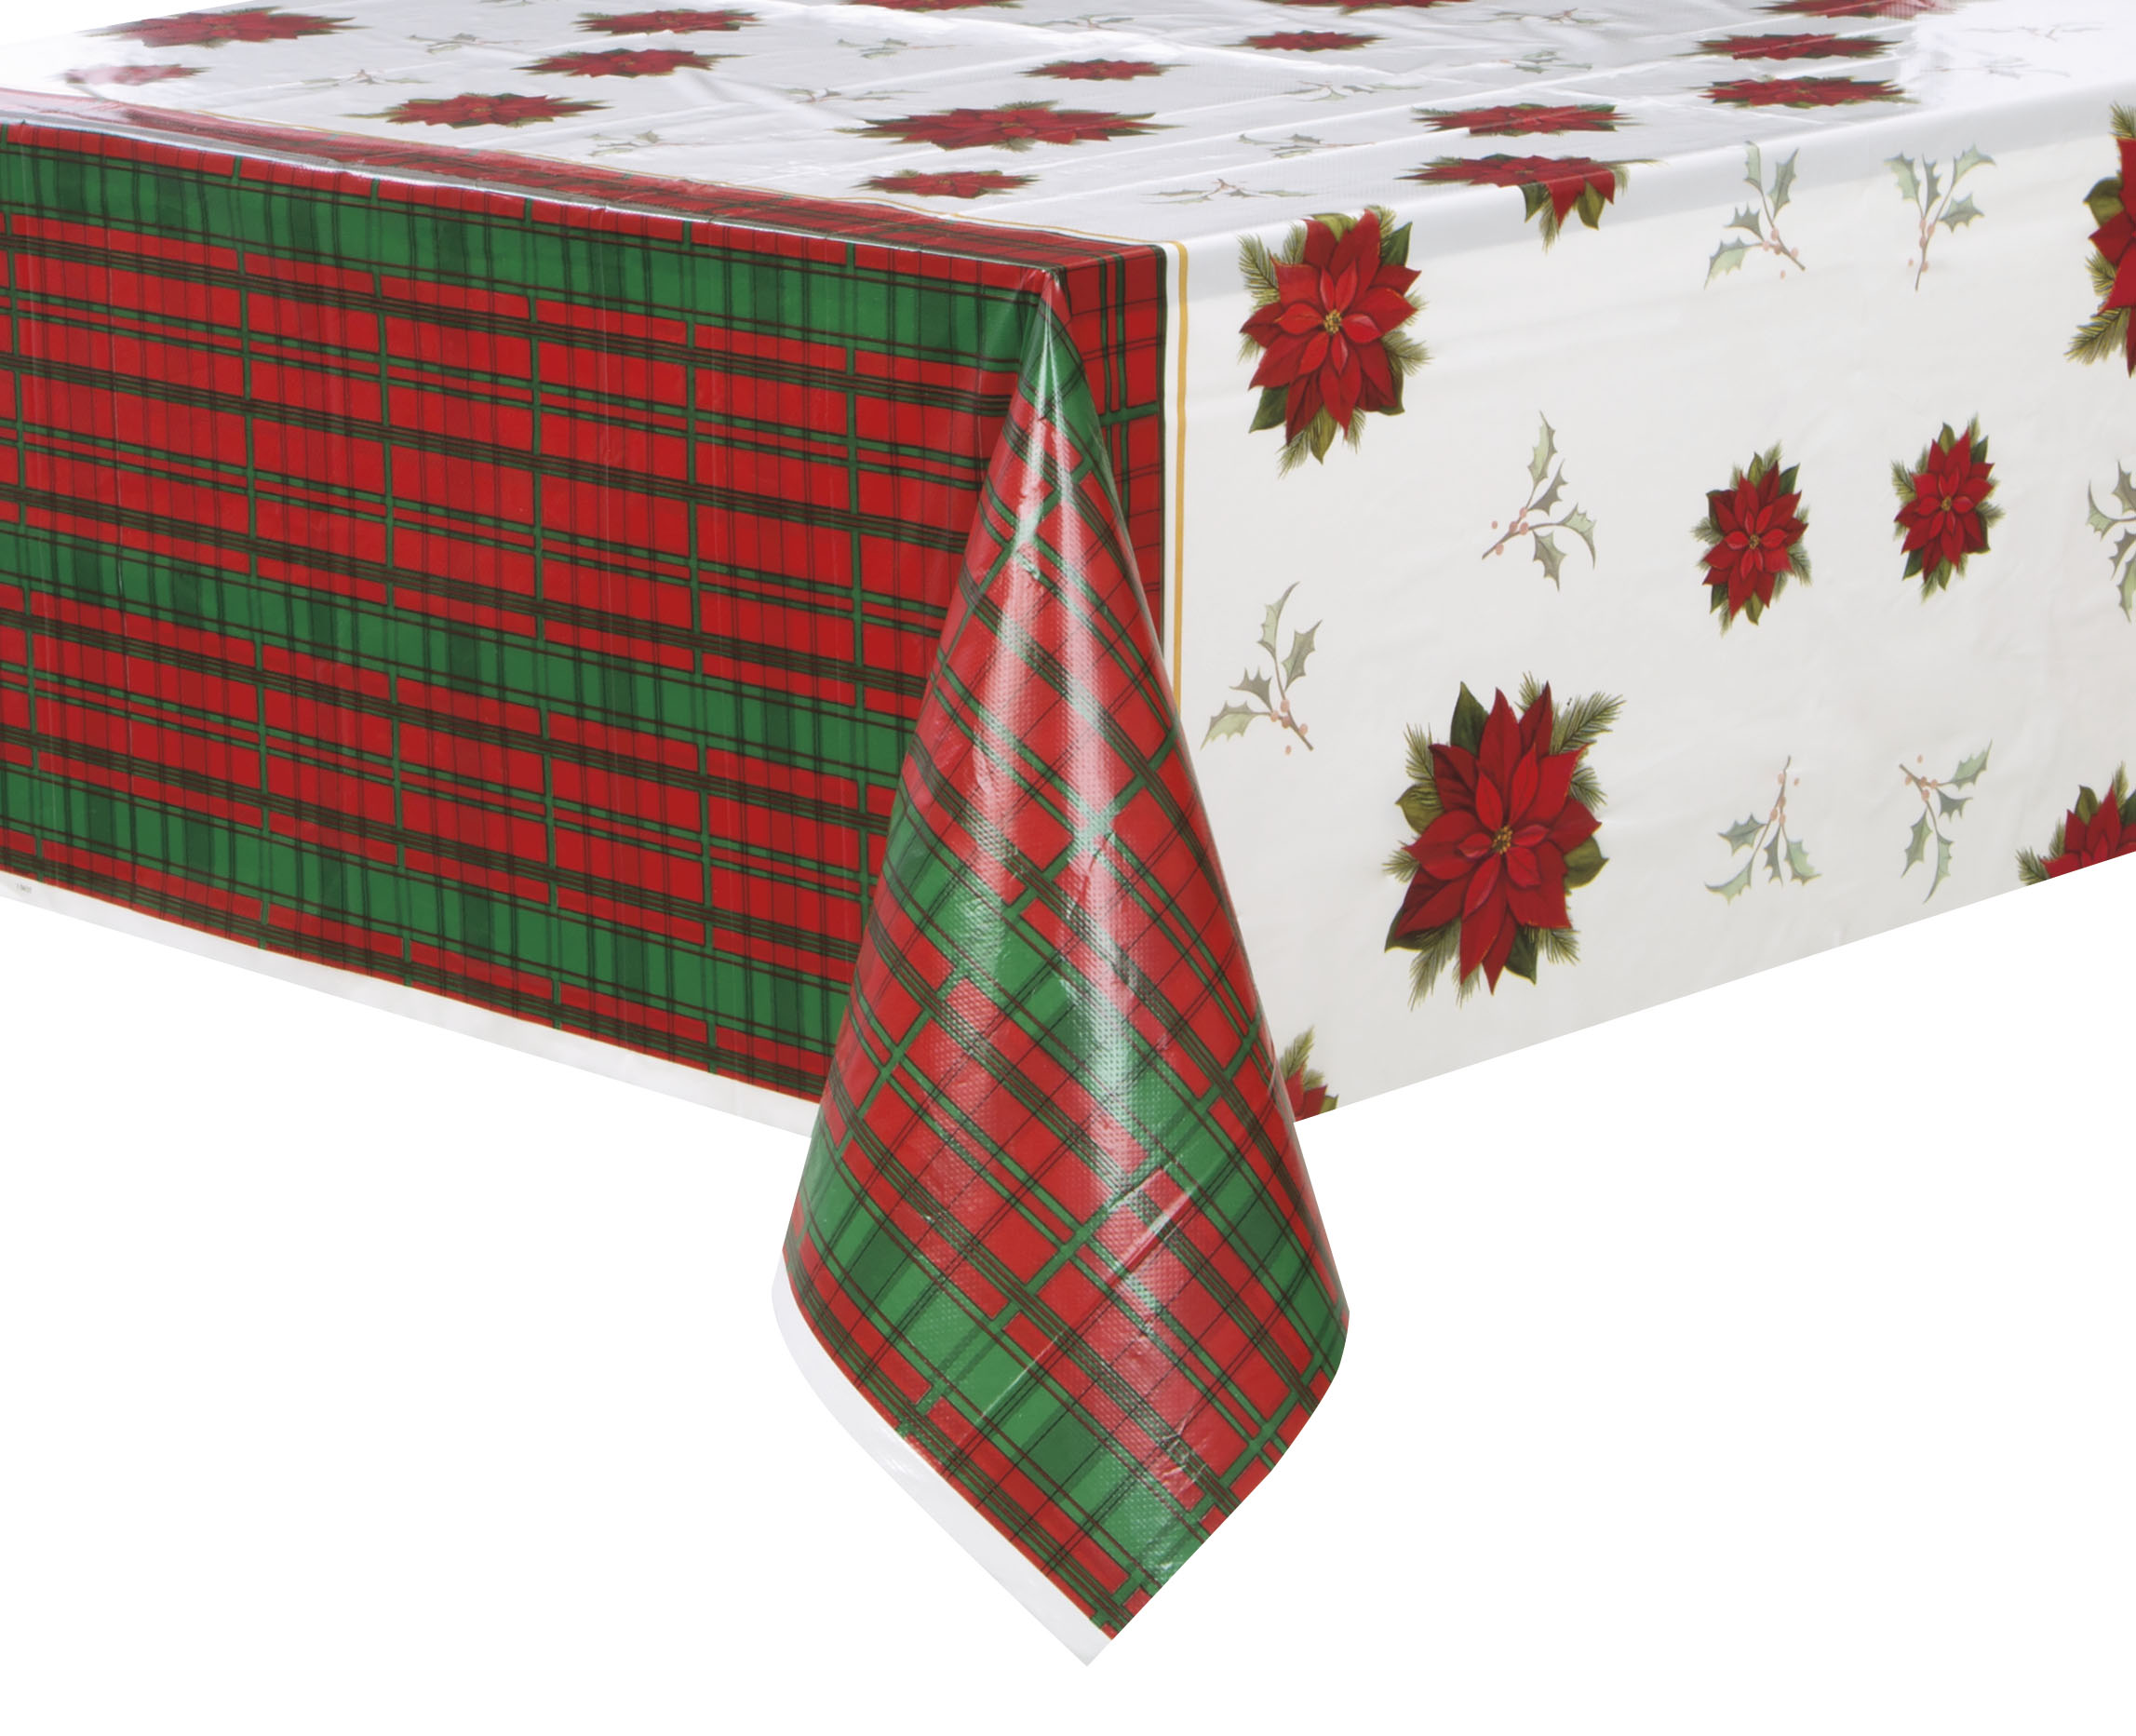 Festive Poinsettia Pattern Holiday Tablecloth Fits A 6